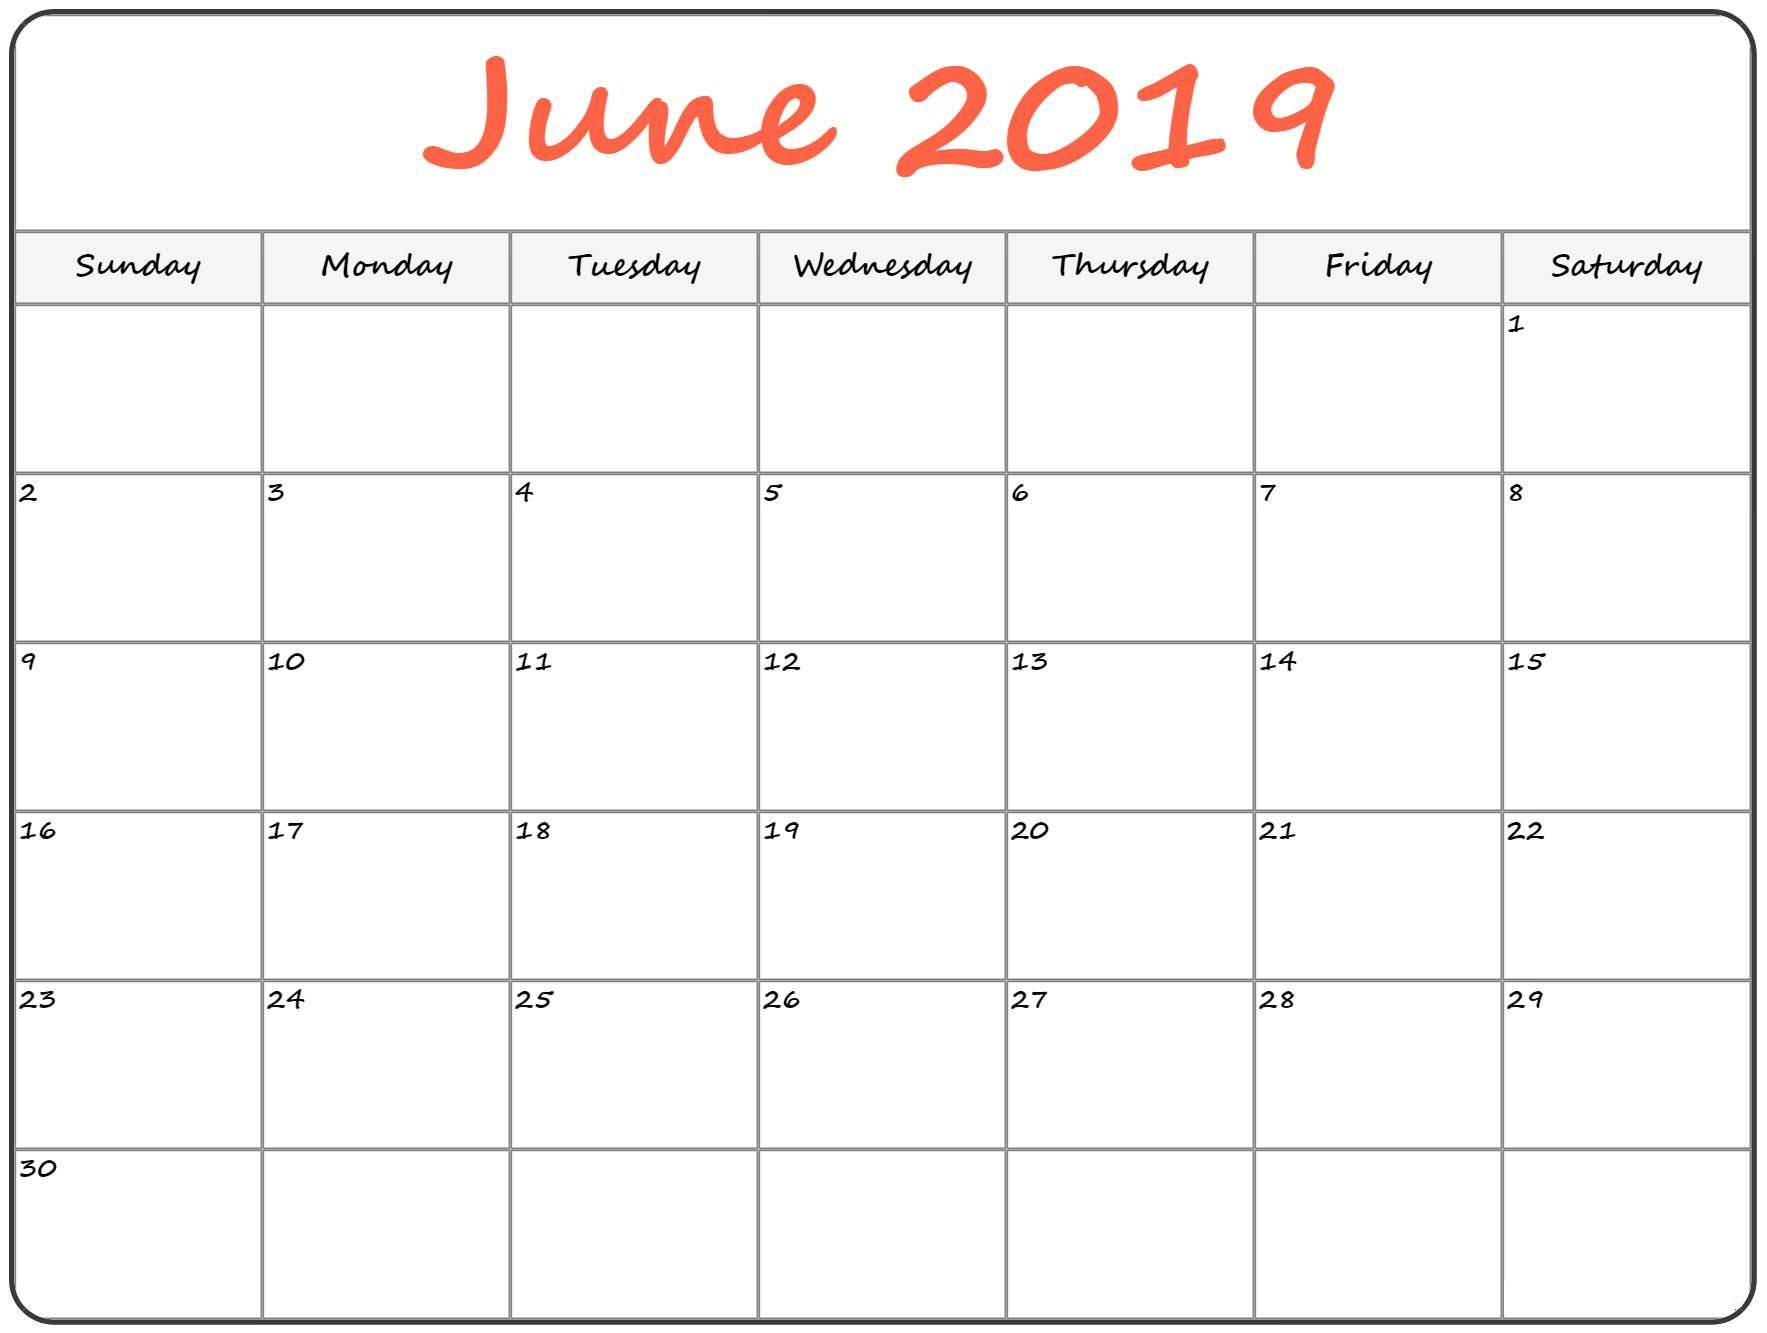 June 2019 Calendar Printable Template In Pdf Word Excel With